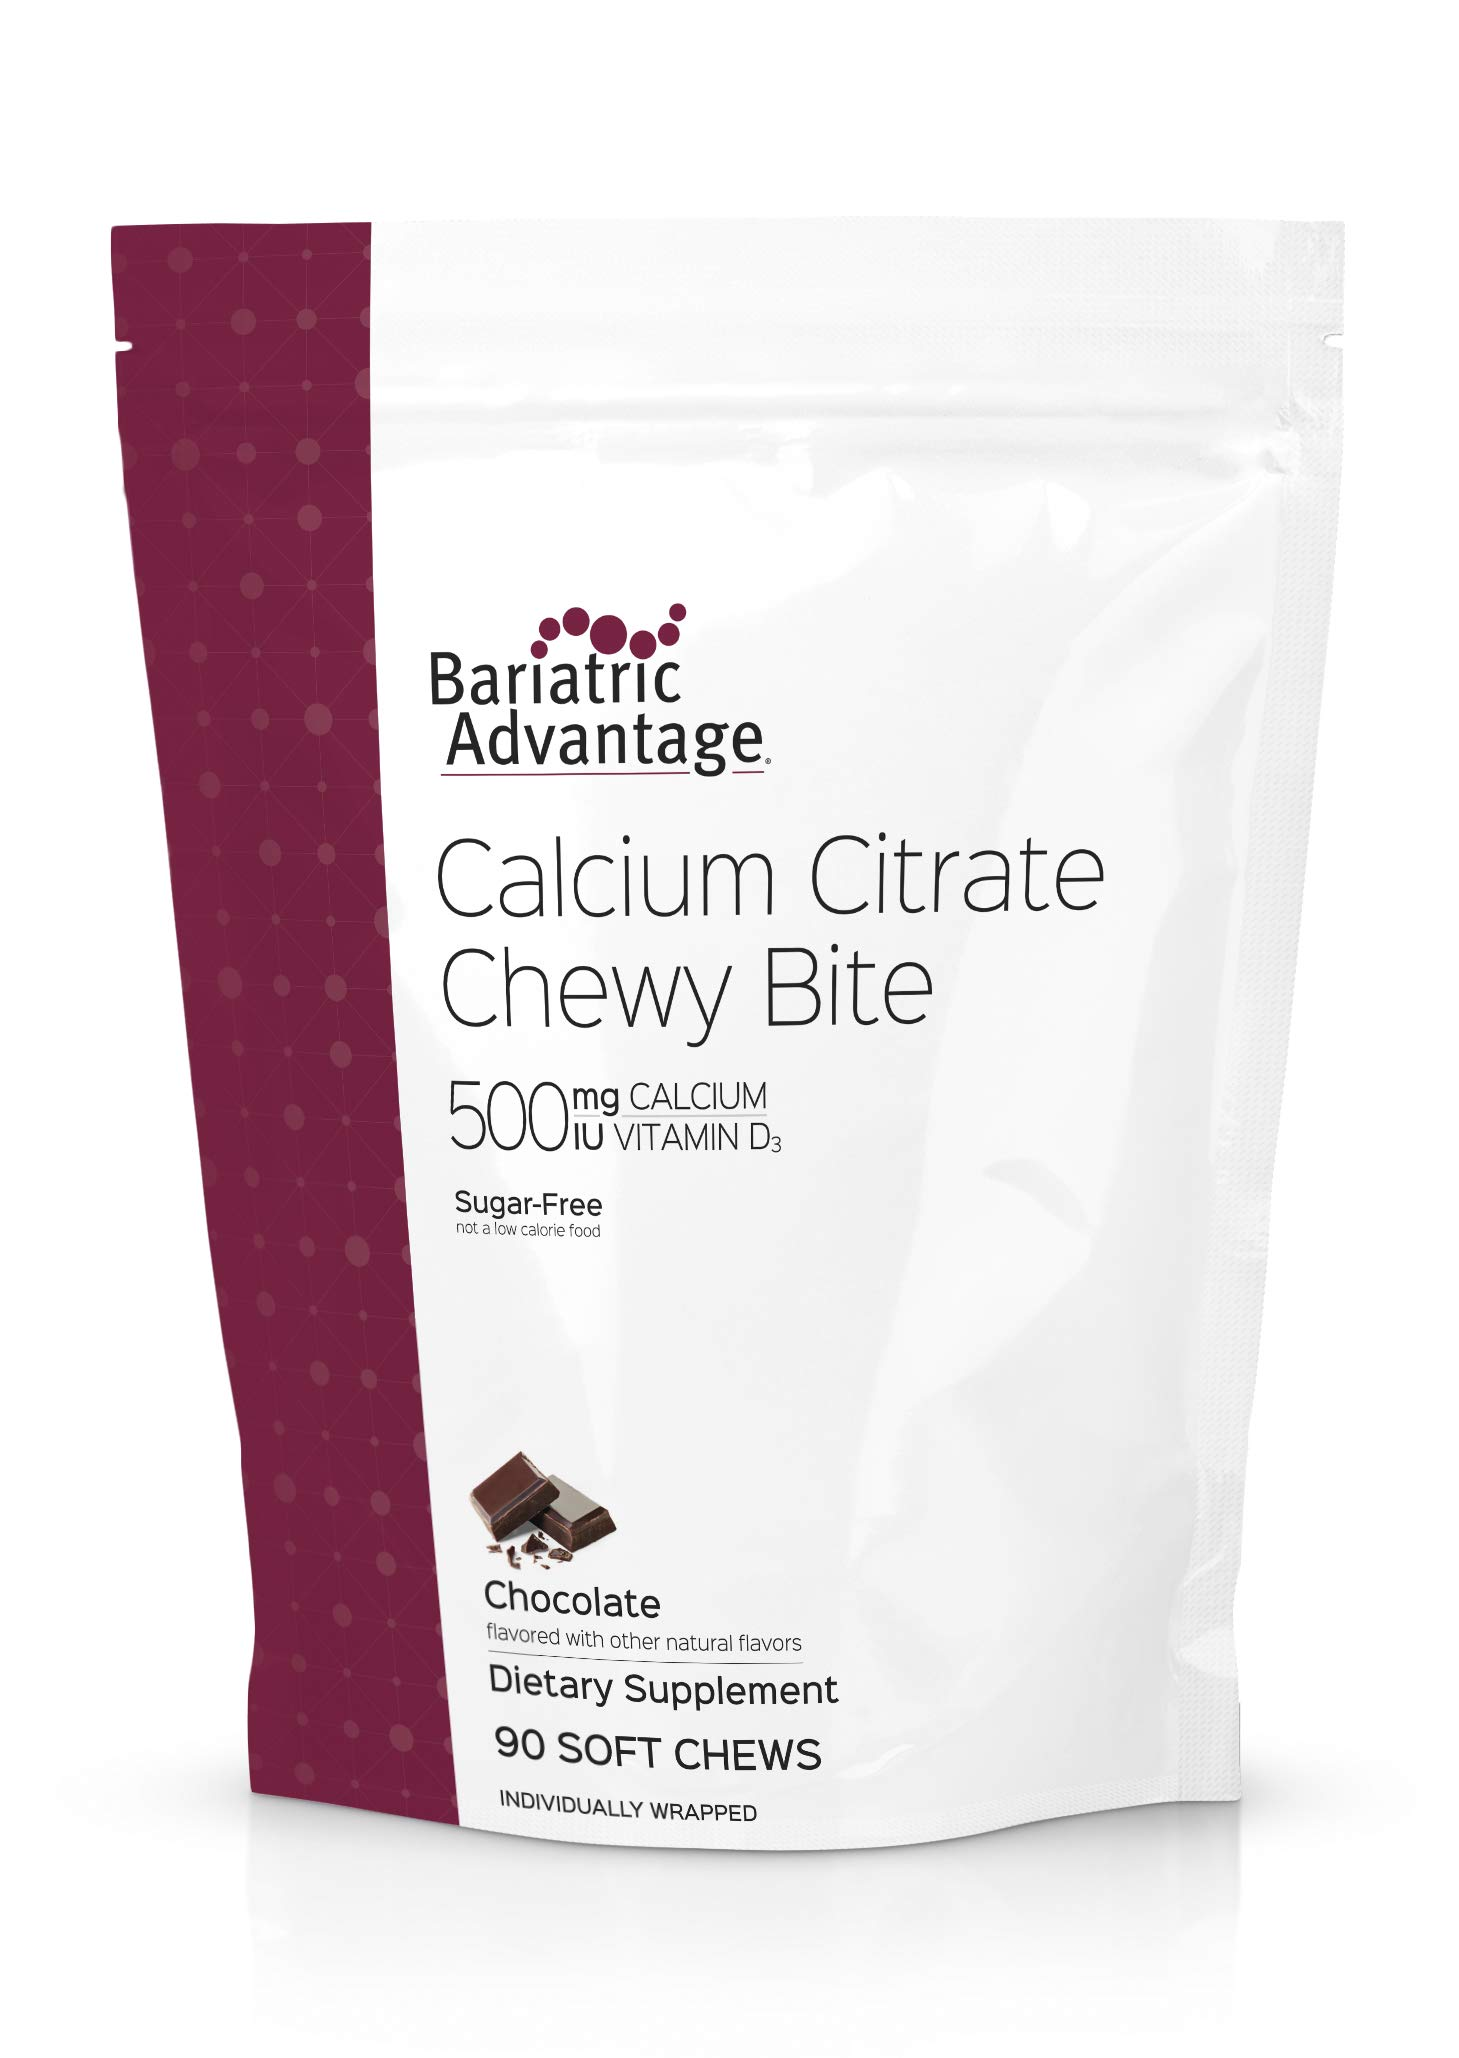 Bariatric Advantage - 500mg Calcium Citrate Chewy Bite - Chocolate, 90 count